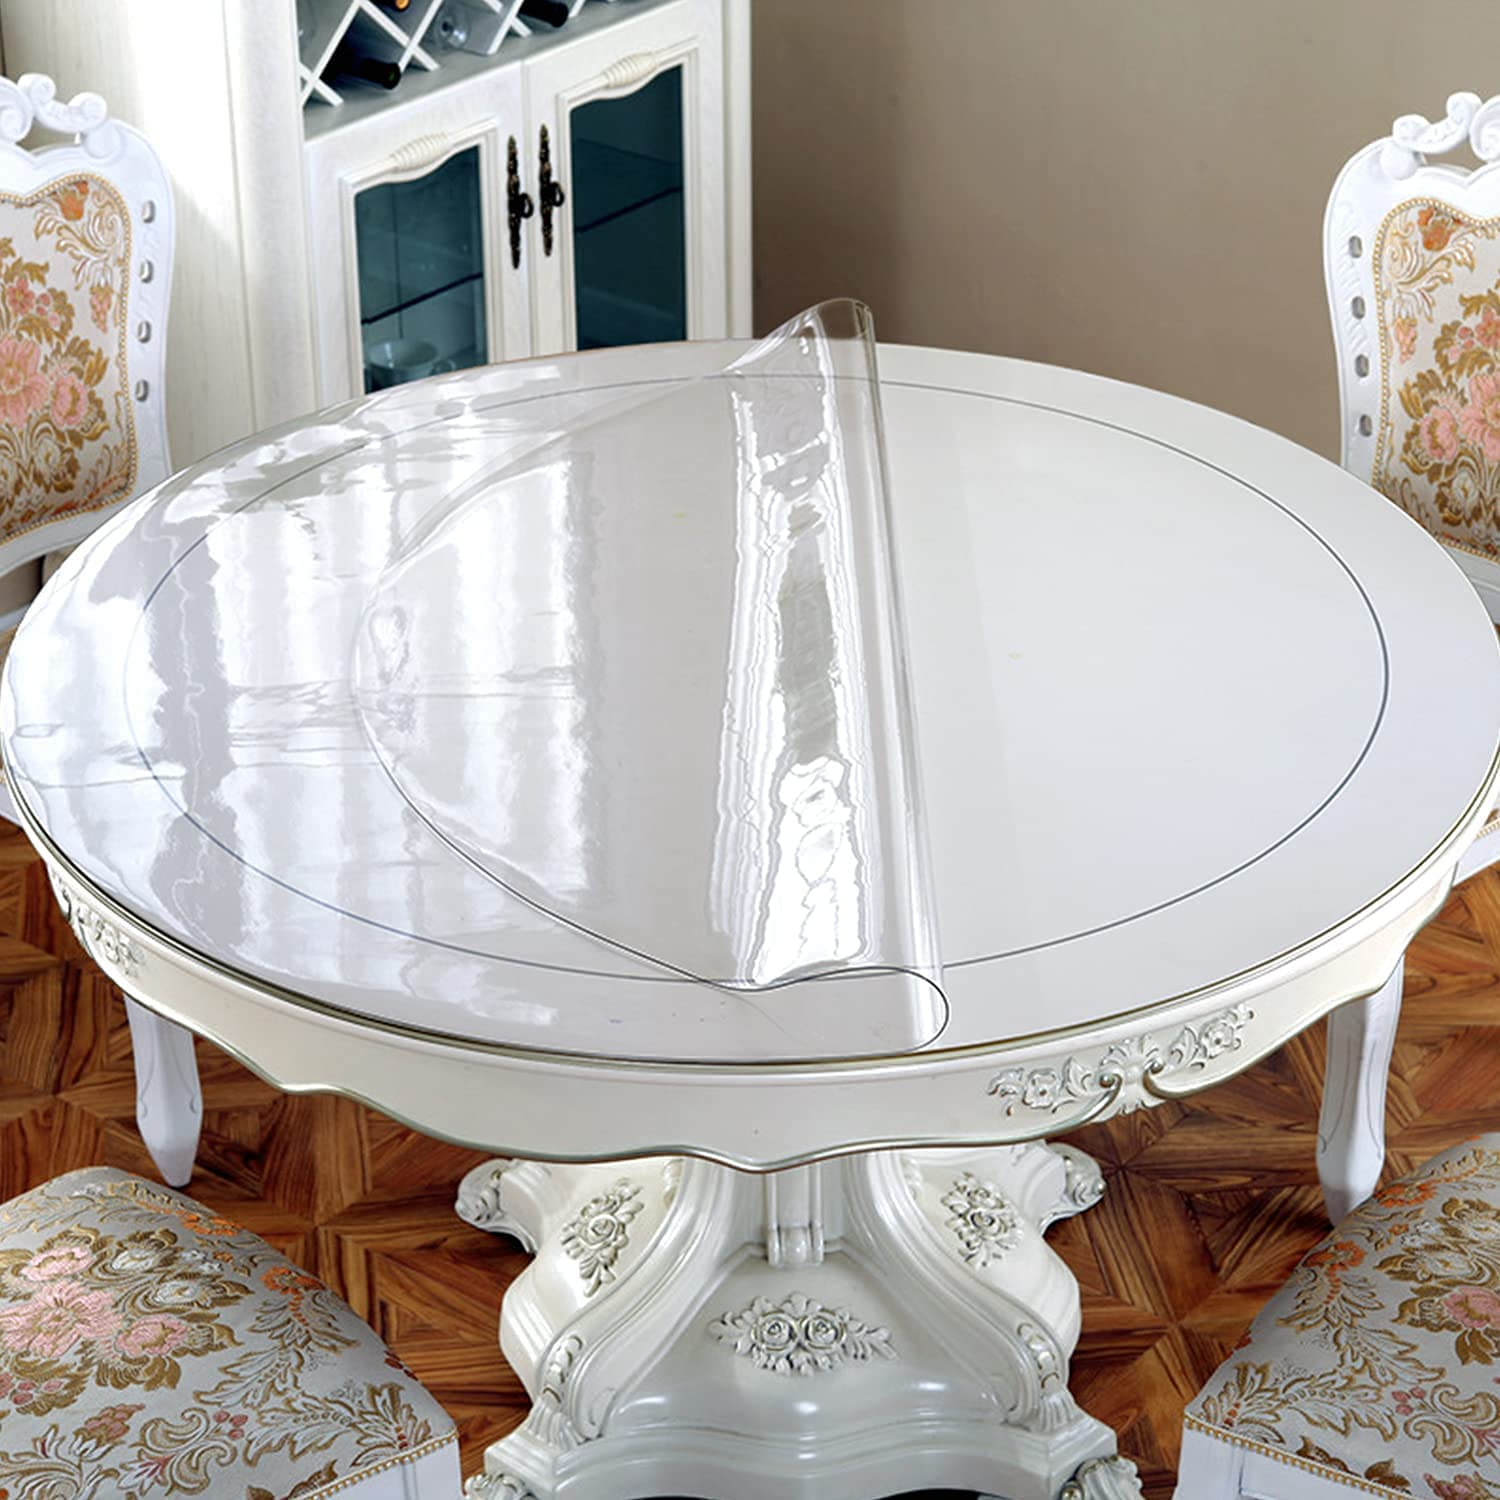 New Version 9.9mm Thick 9 Inches Clear Round Table Cover, Plastic Table  Cover, Clear Table Protector Round, Table Pad, Clear Table Cover Protector